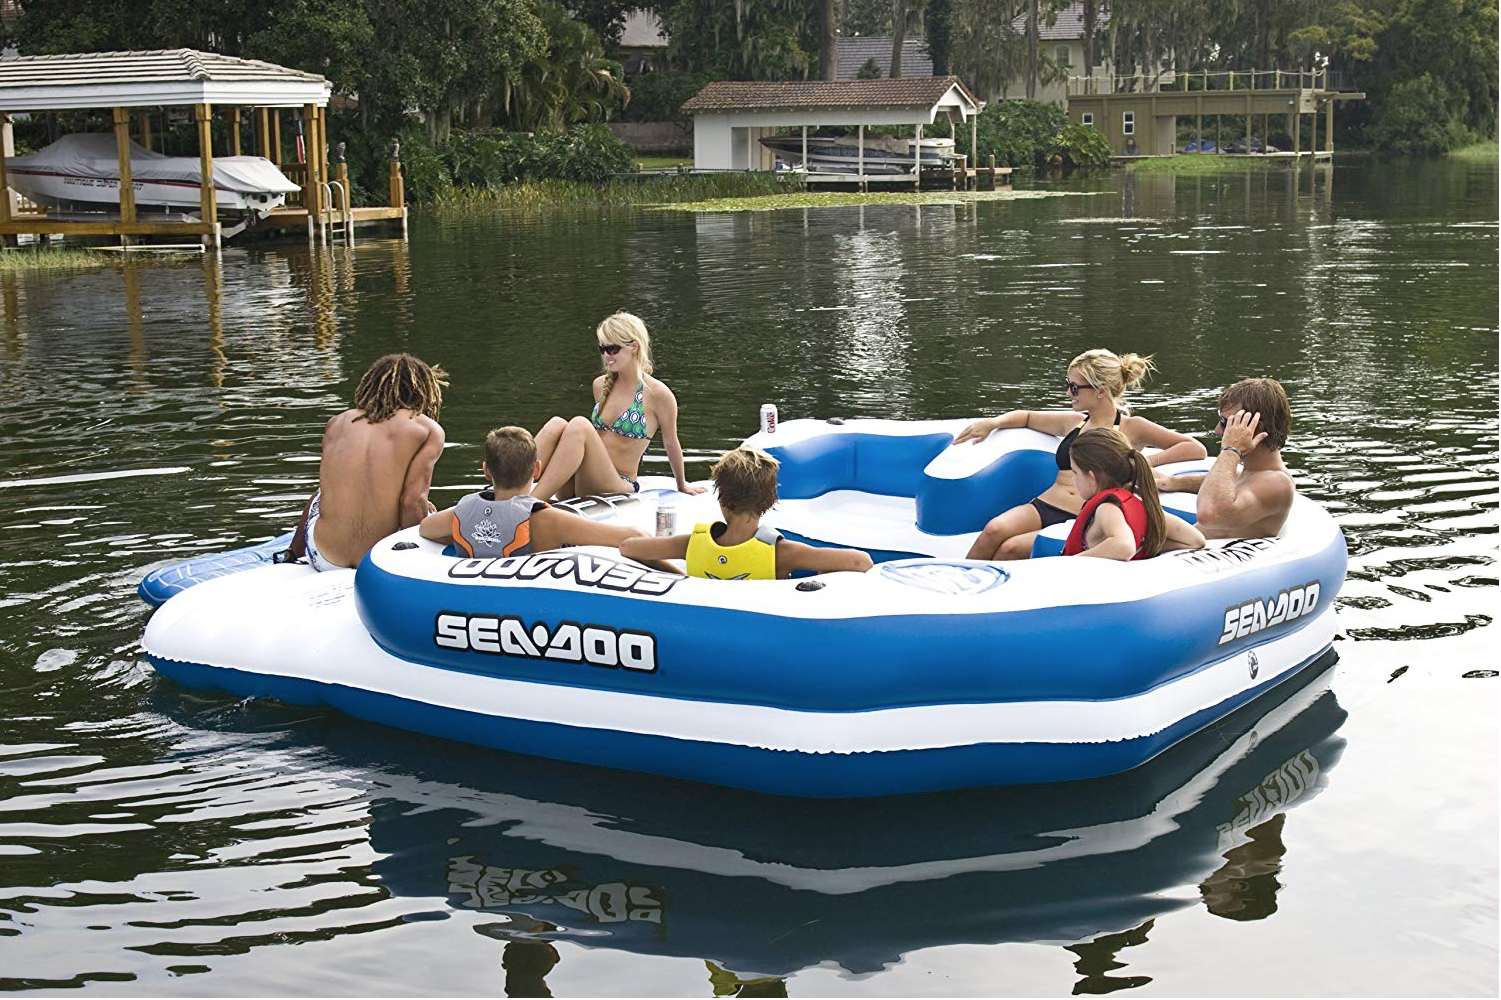 This 8-Person Mega Float Comes Equipped With a Sound System So You Can Keep the Party Going